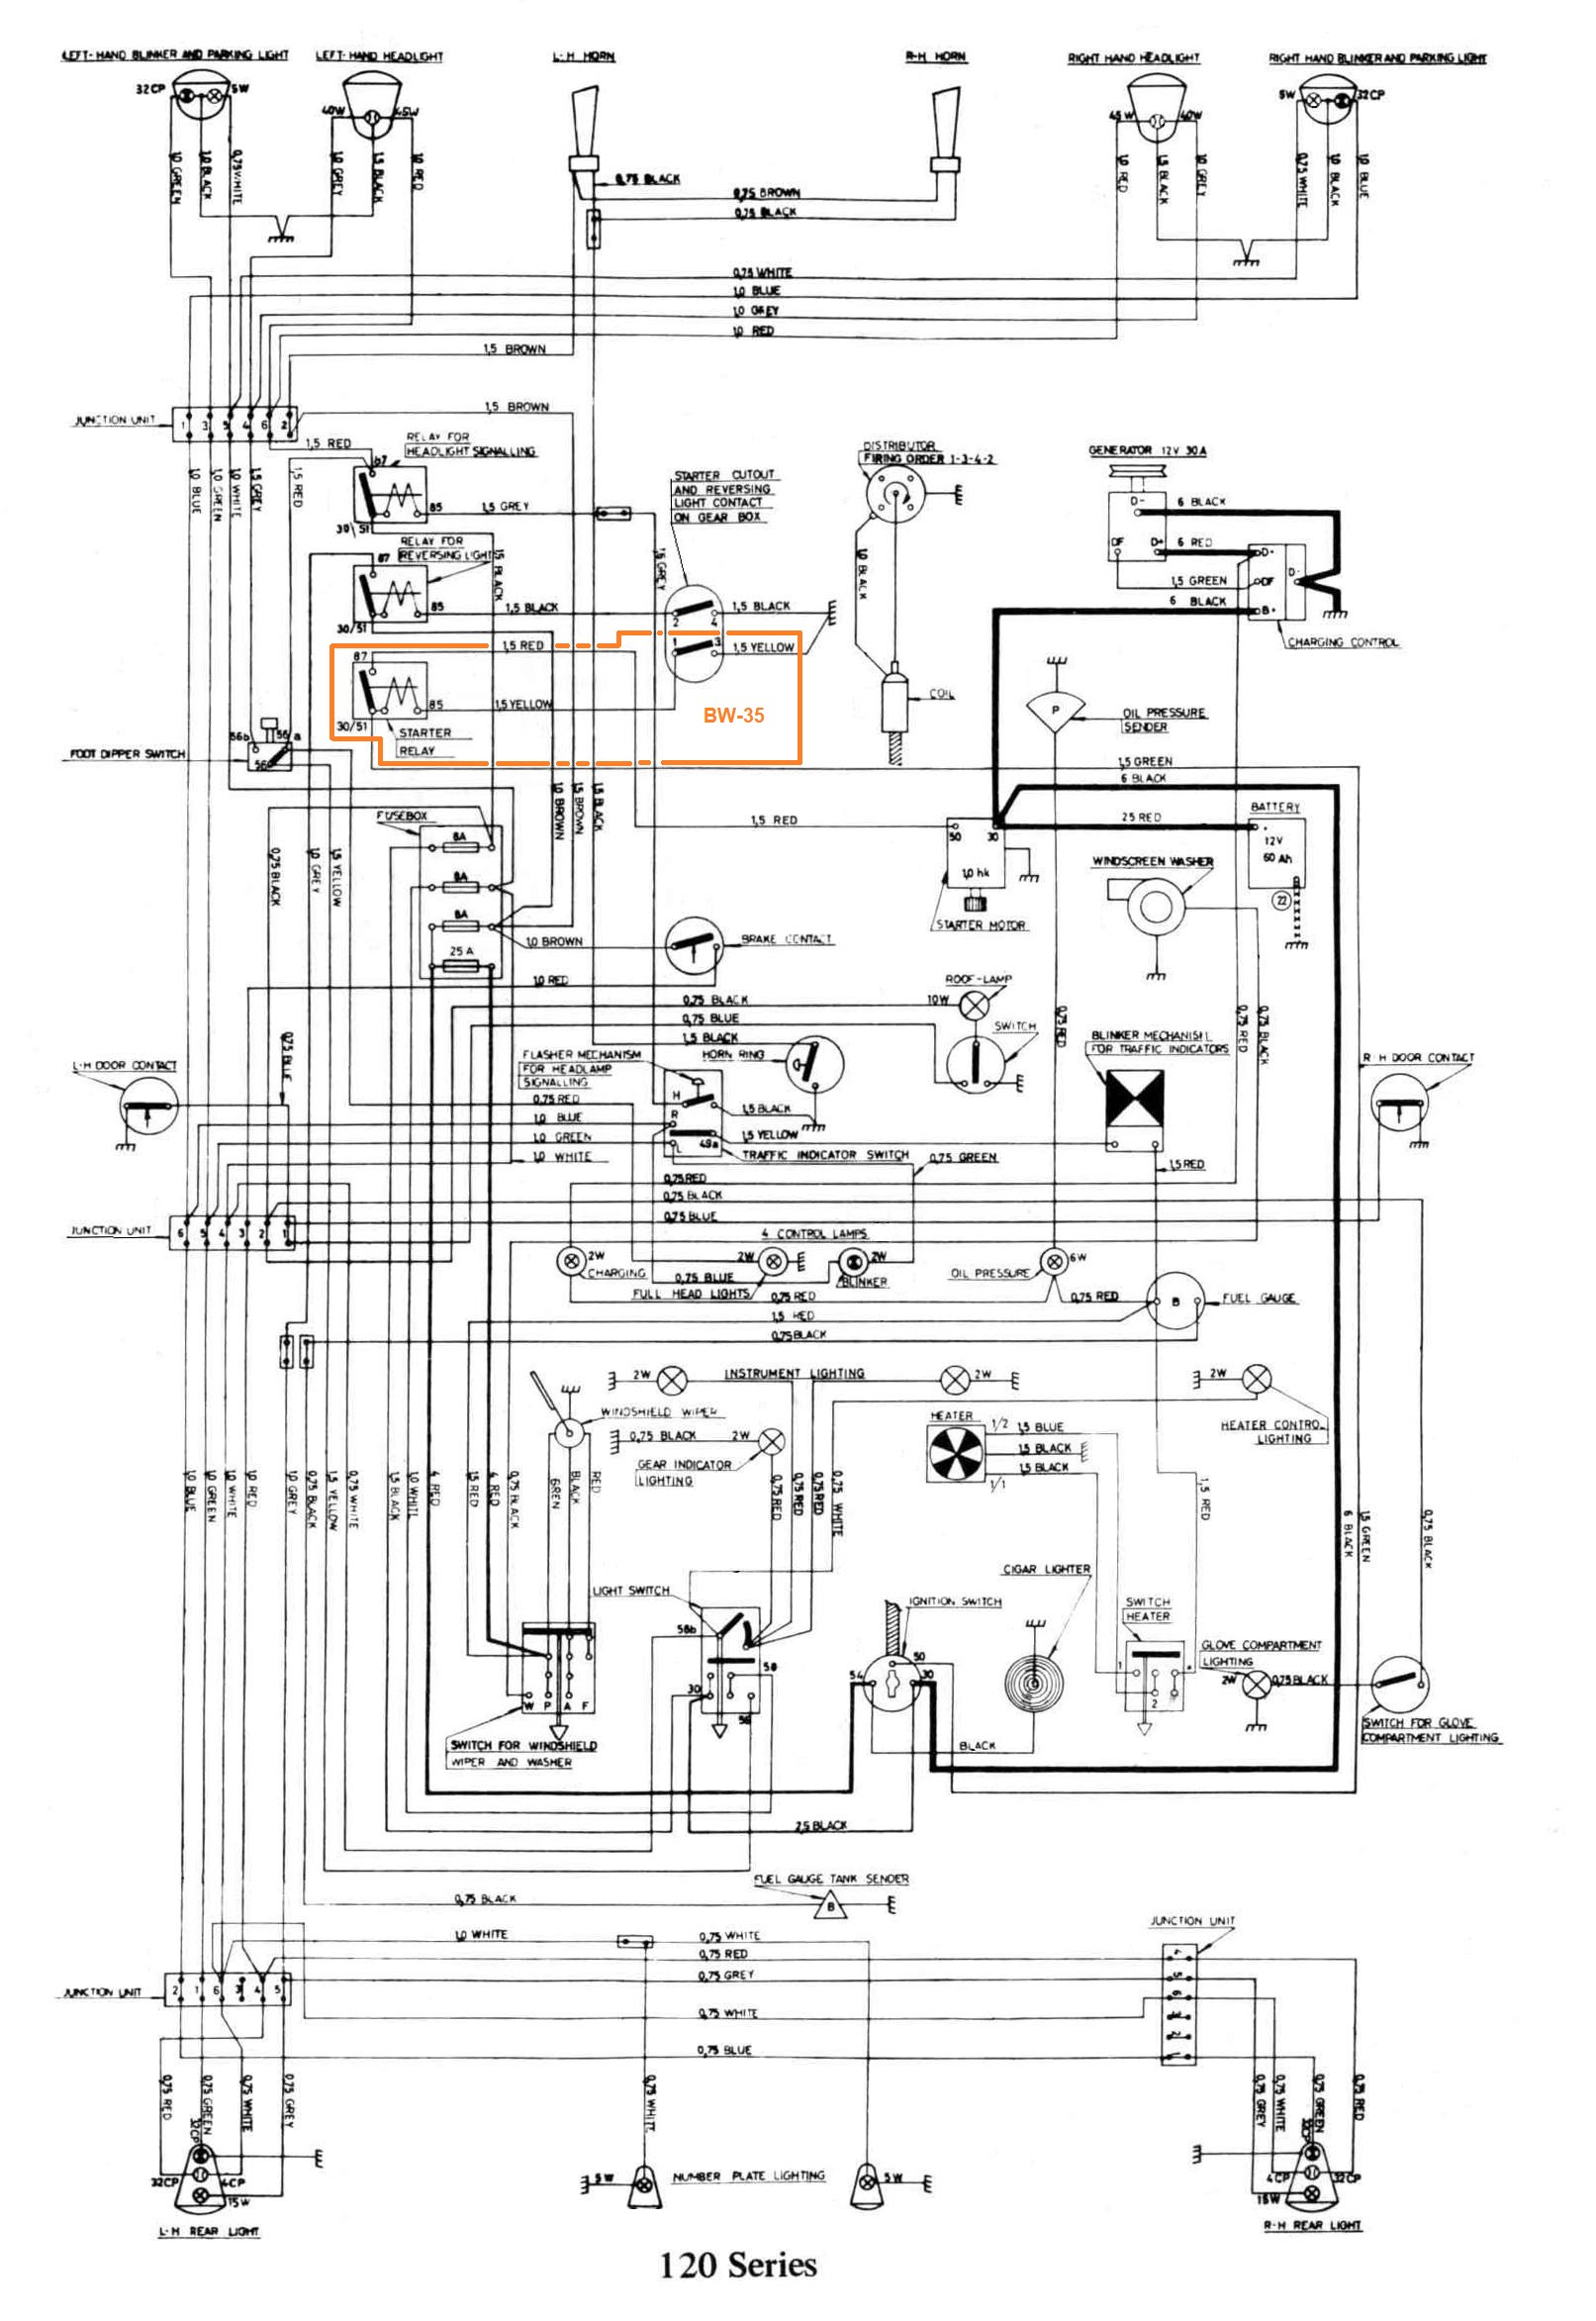 volvo a30d wiring diagram basic electronics wiring diagram Volvo A30f volvo a30d wiring diagramsmall resolution of 93 volvo 940 wiring diagram free download electrical wiring diagrams